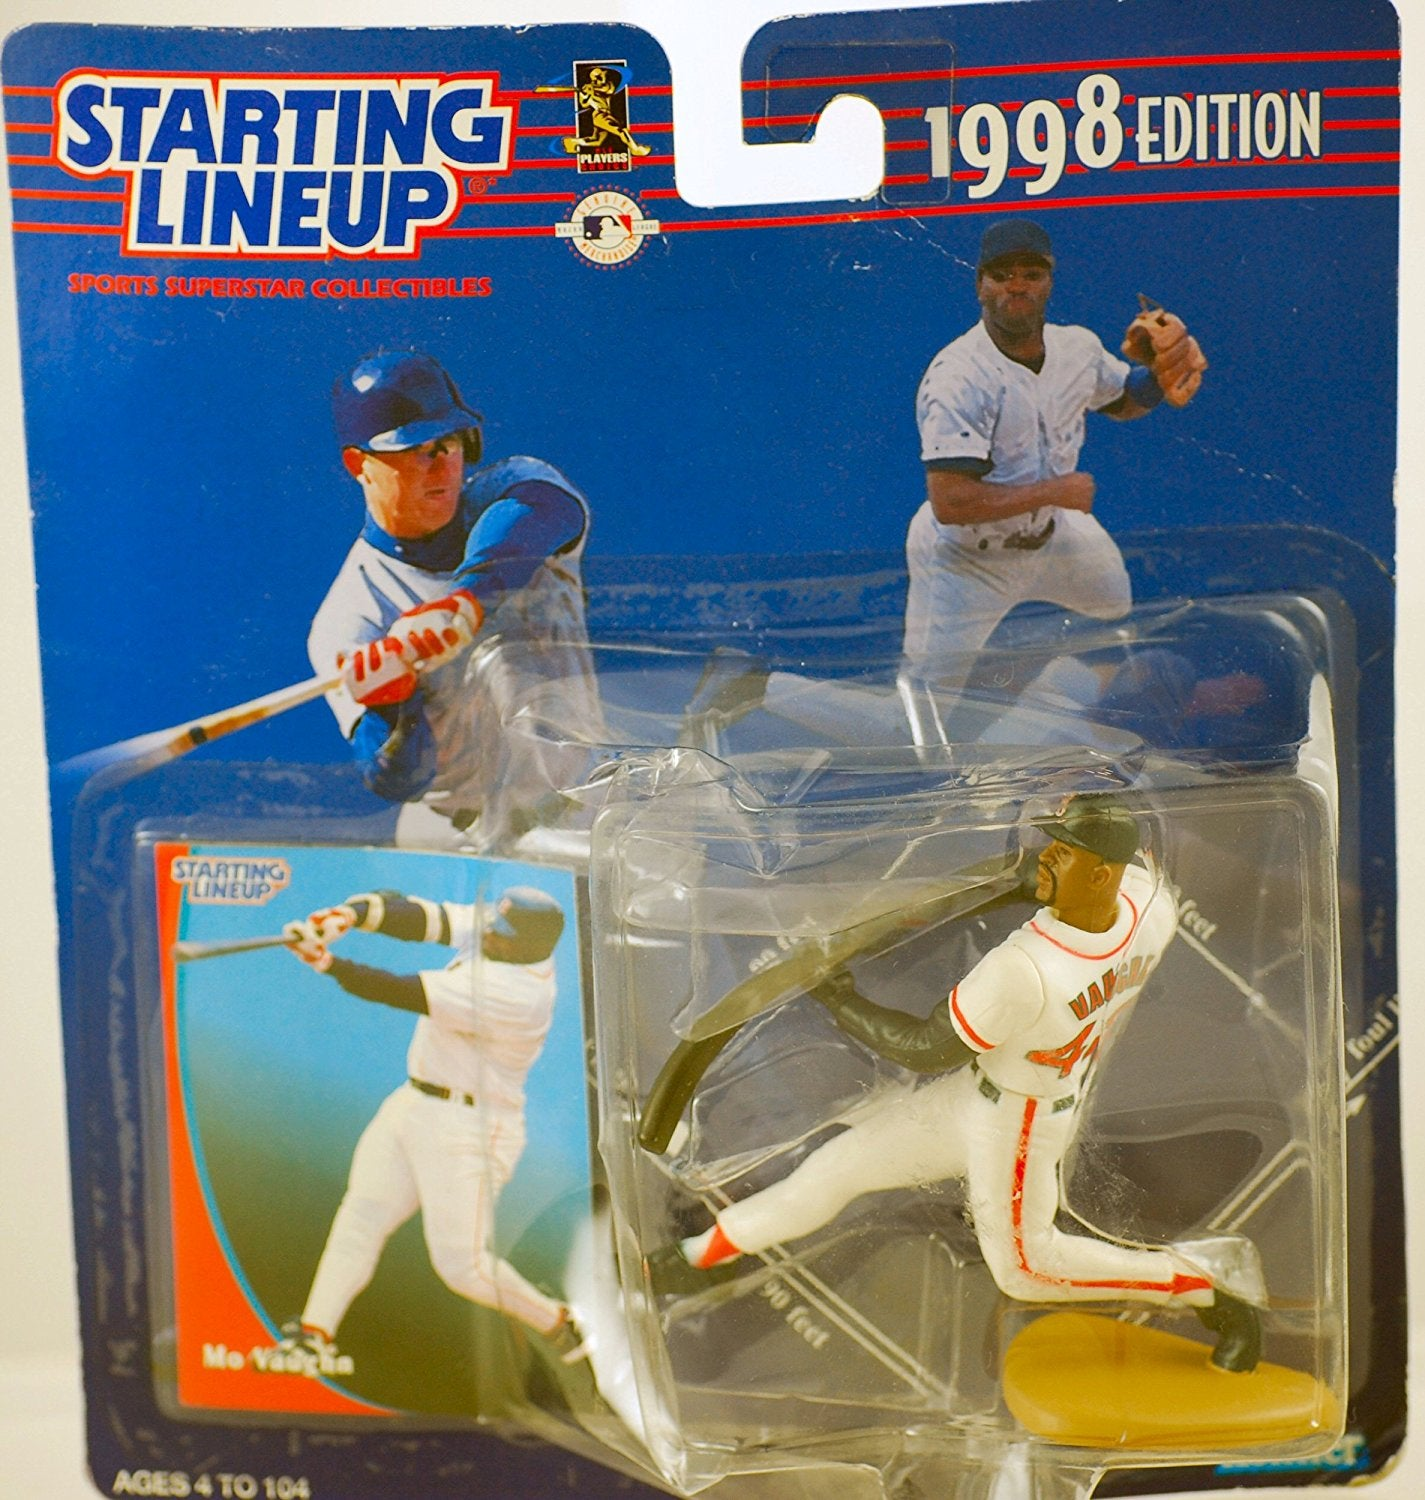 1998 Starting Lineup MLB Mo Vaughn #42 - Boston Red Sox - Vintage Action Figure - w/ Trading Card - Limited Edition - Collectible